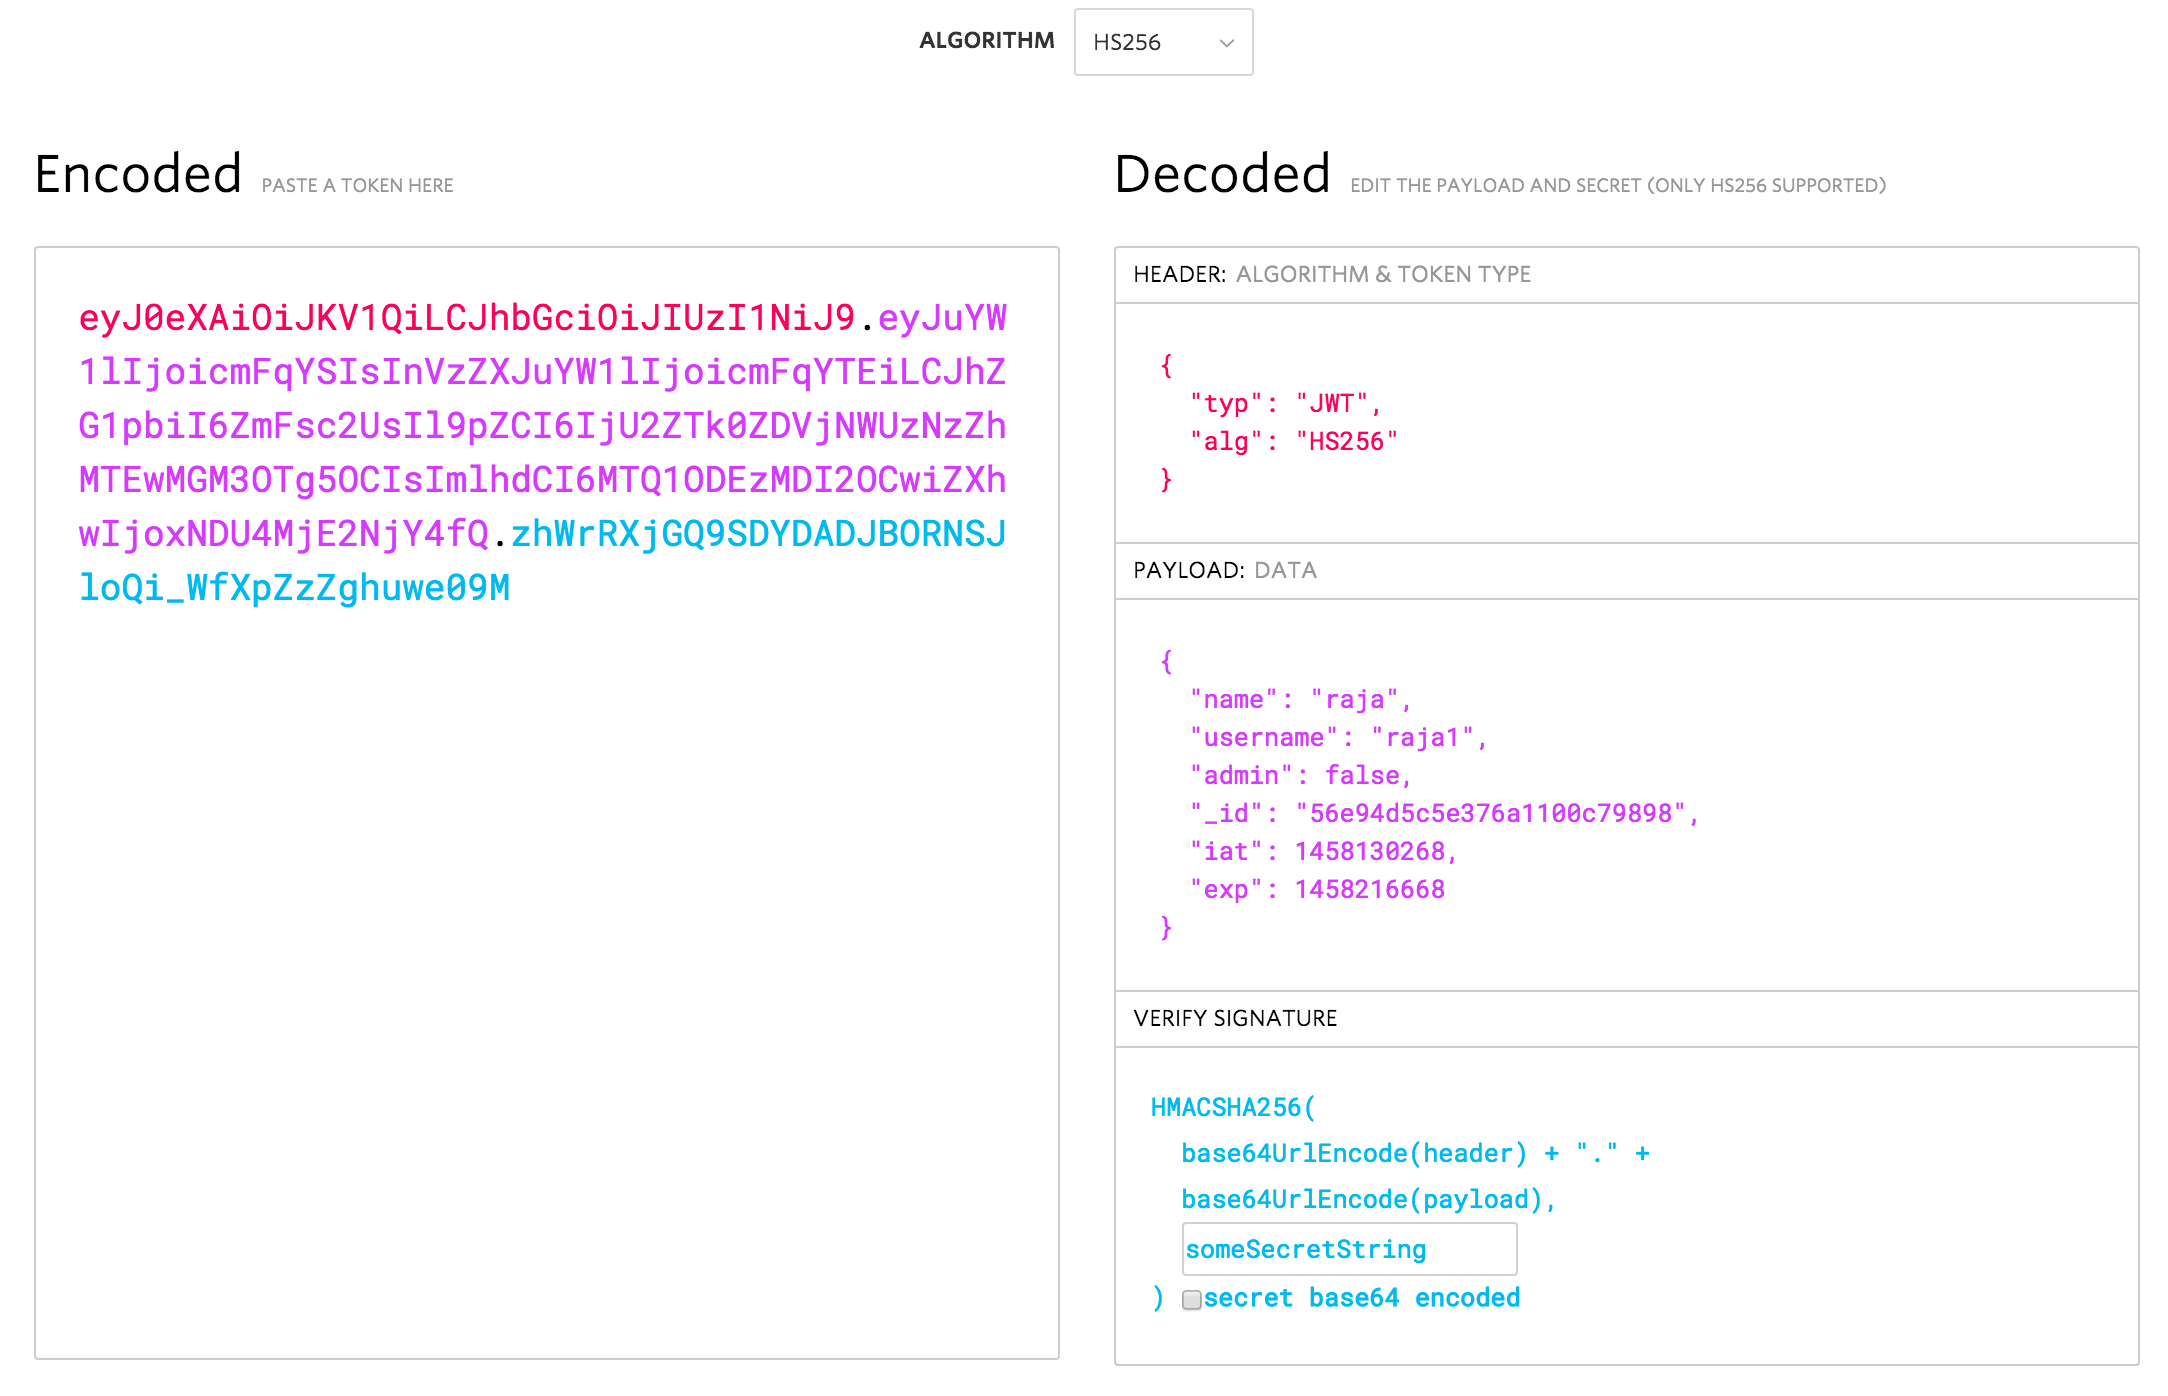 Securing React Redux Apps With JWT Tokens - rajaraodv - Medium